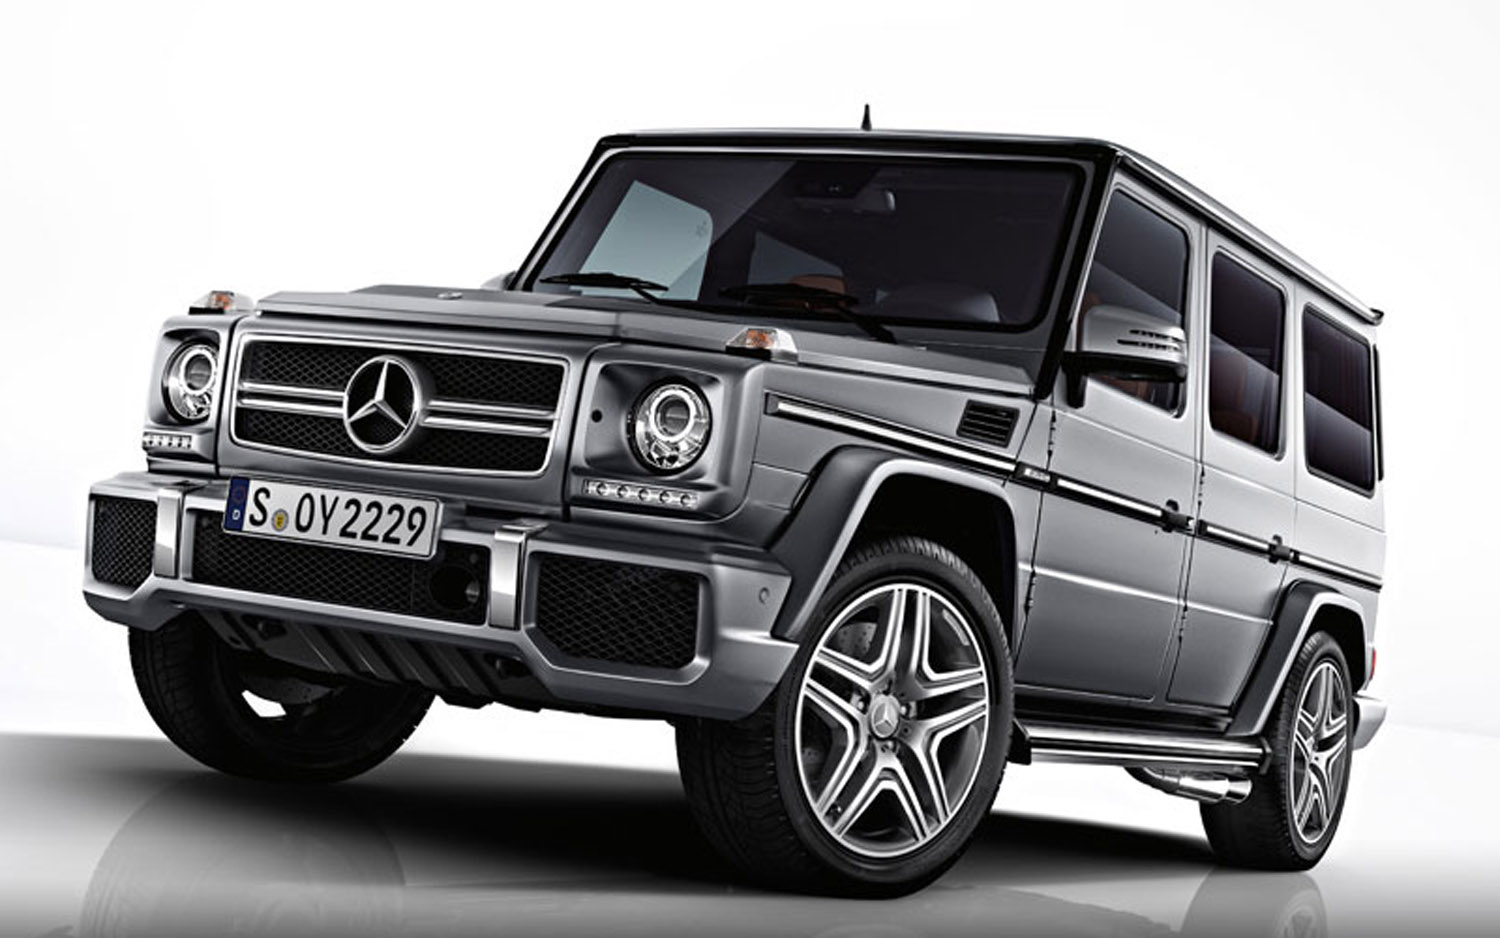 Mercedes benz g class 4x4 and 6x6 les bons viveurs l b v for Mercedes benz g 63